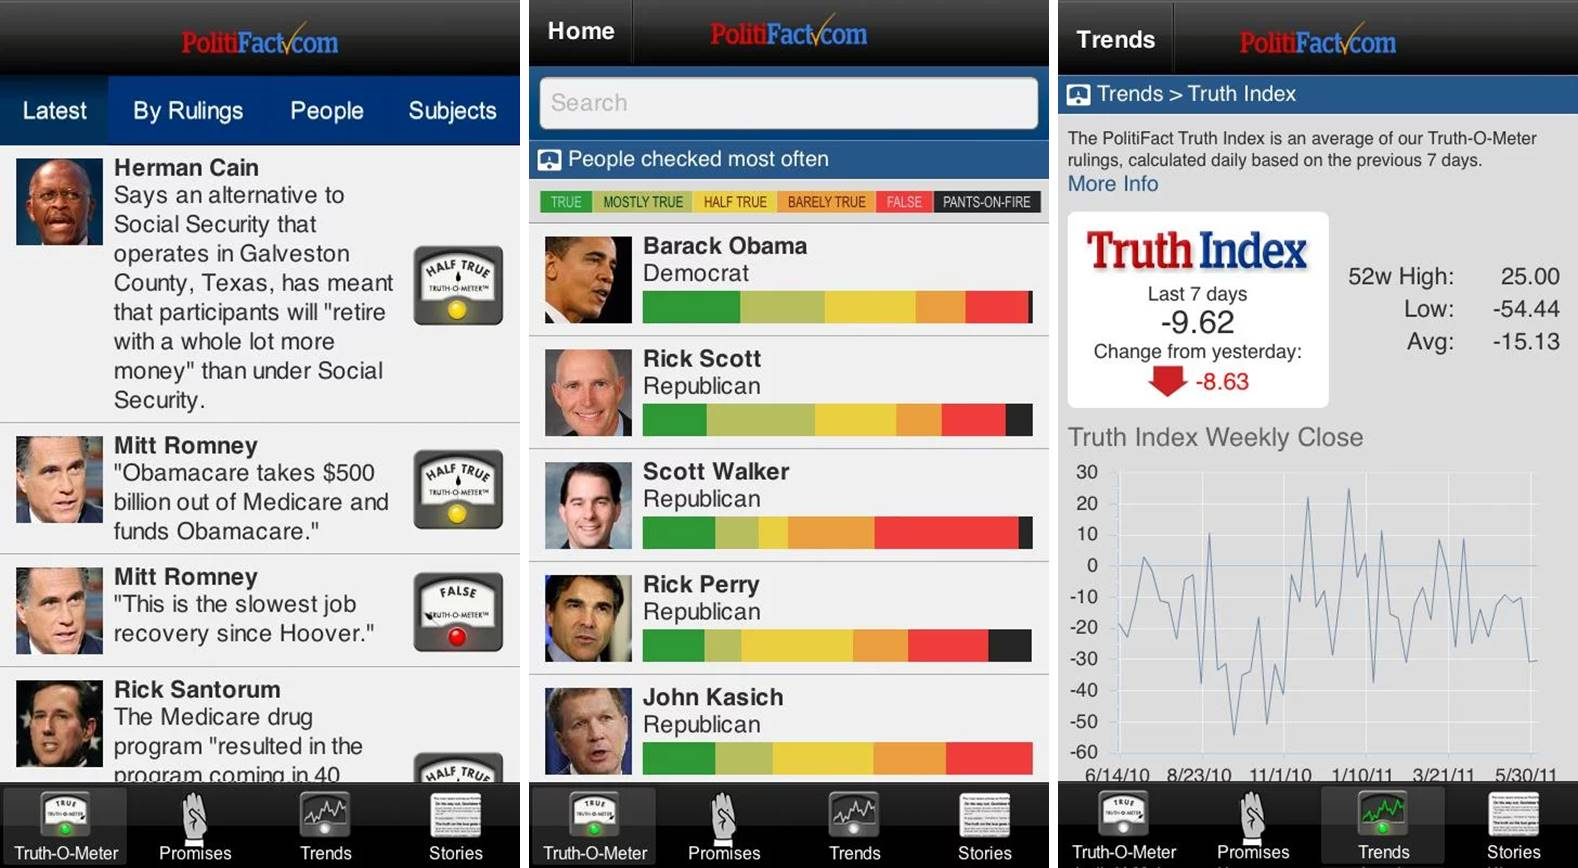 PolitiFact mobile app indicating truthfulness of politicians